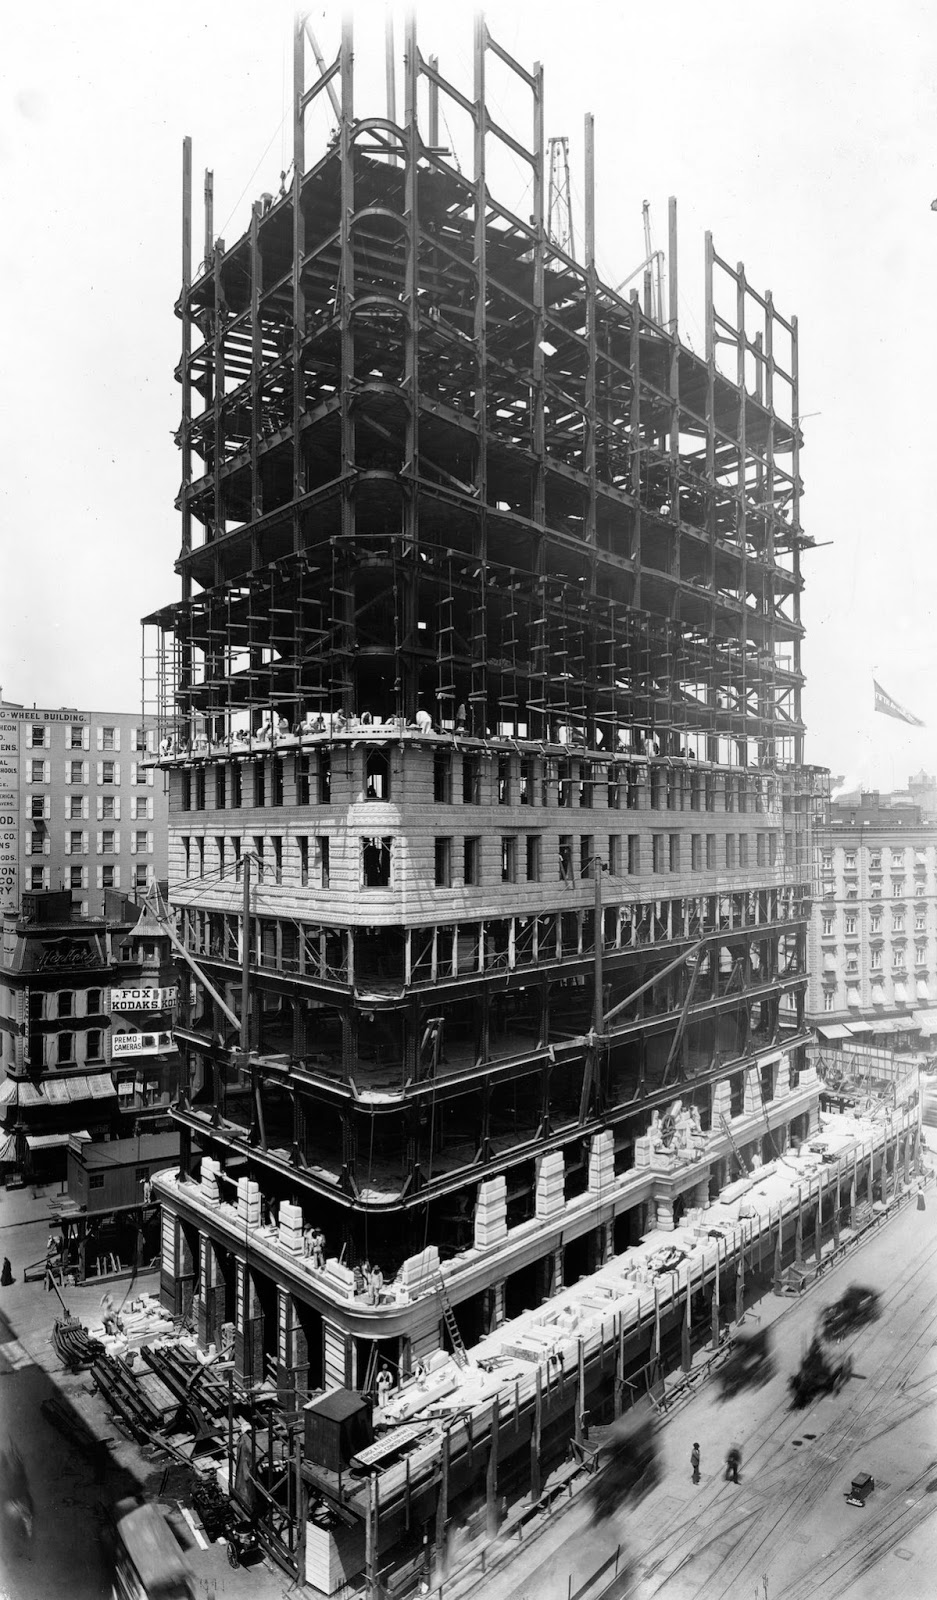 Building Under Construction : Old photos of the flatiron building under construction